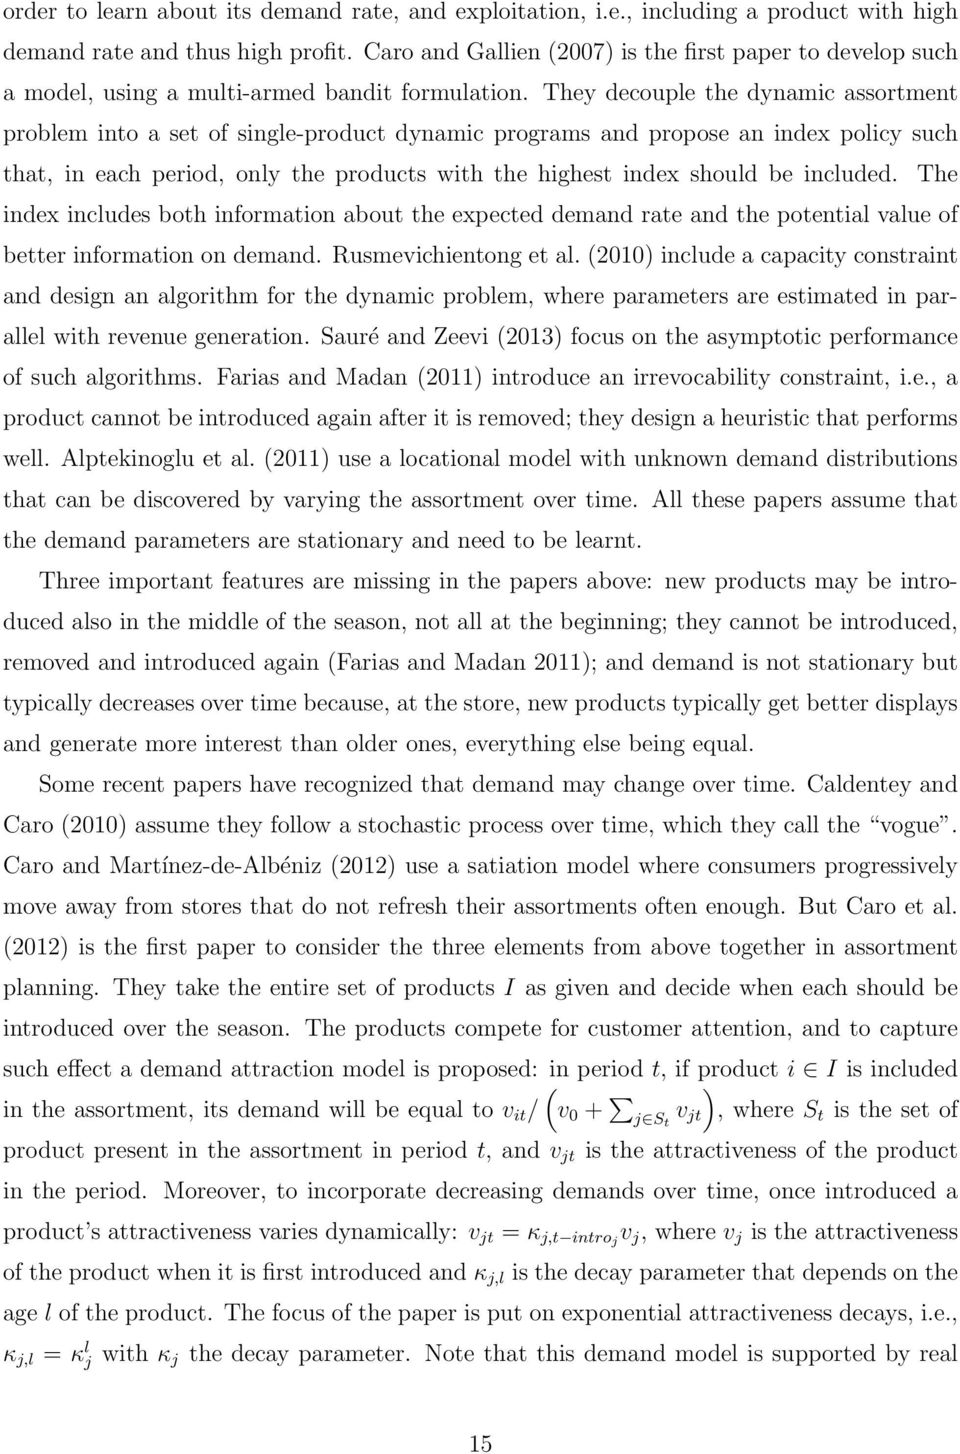 They decouple the dynamic assortment problem into a set of single-product dynamic programs and propose an index policy such that, in each period, only the products with the highest index should be